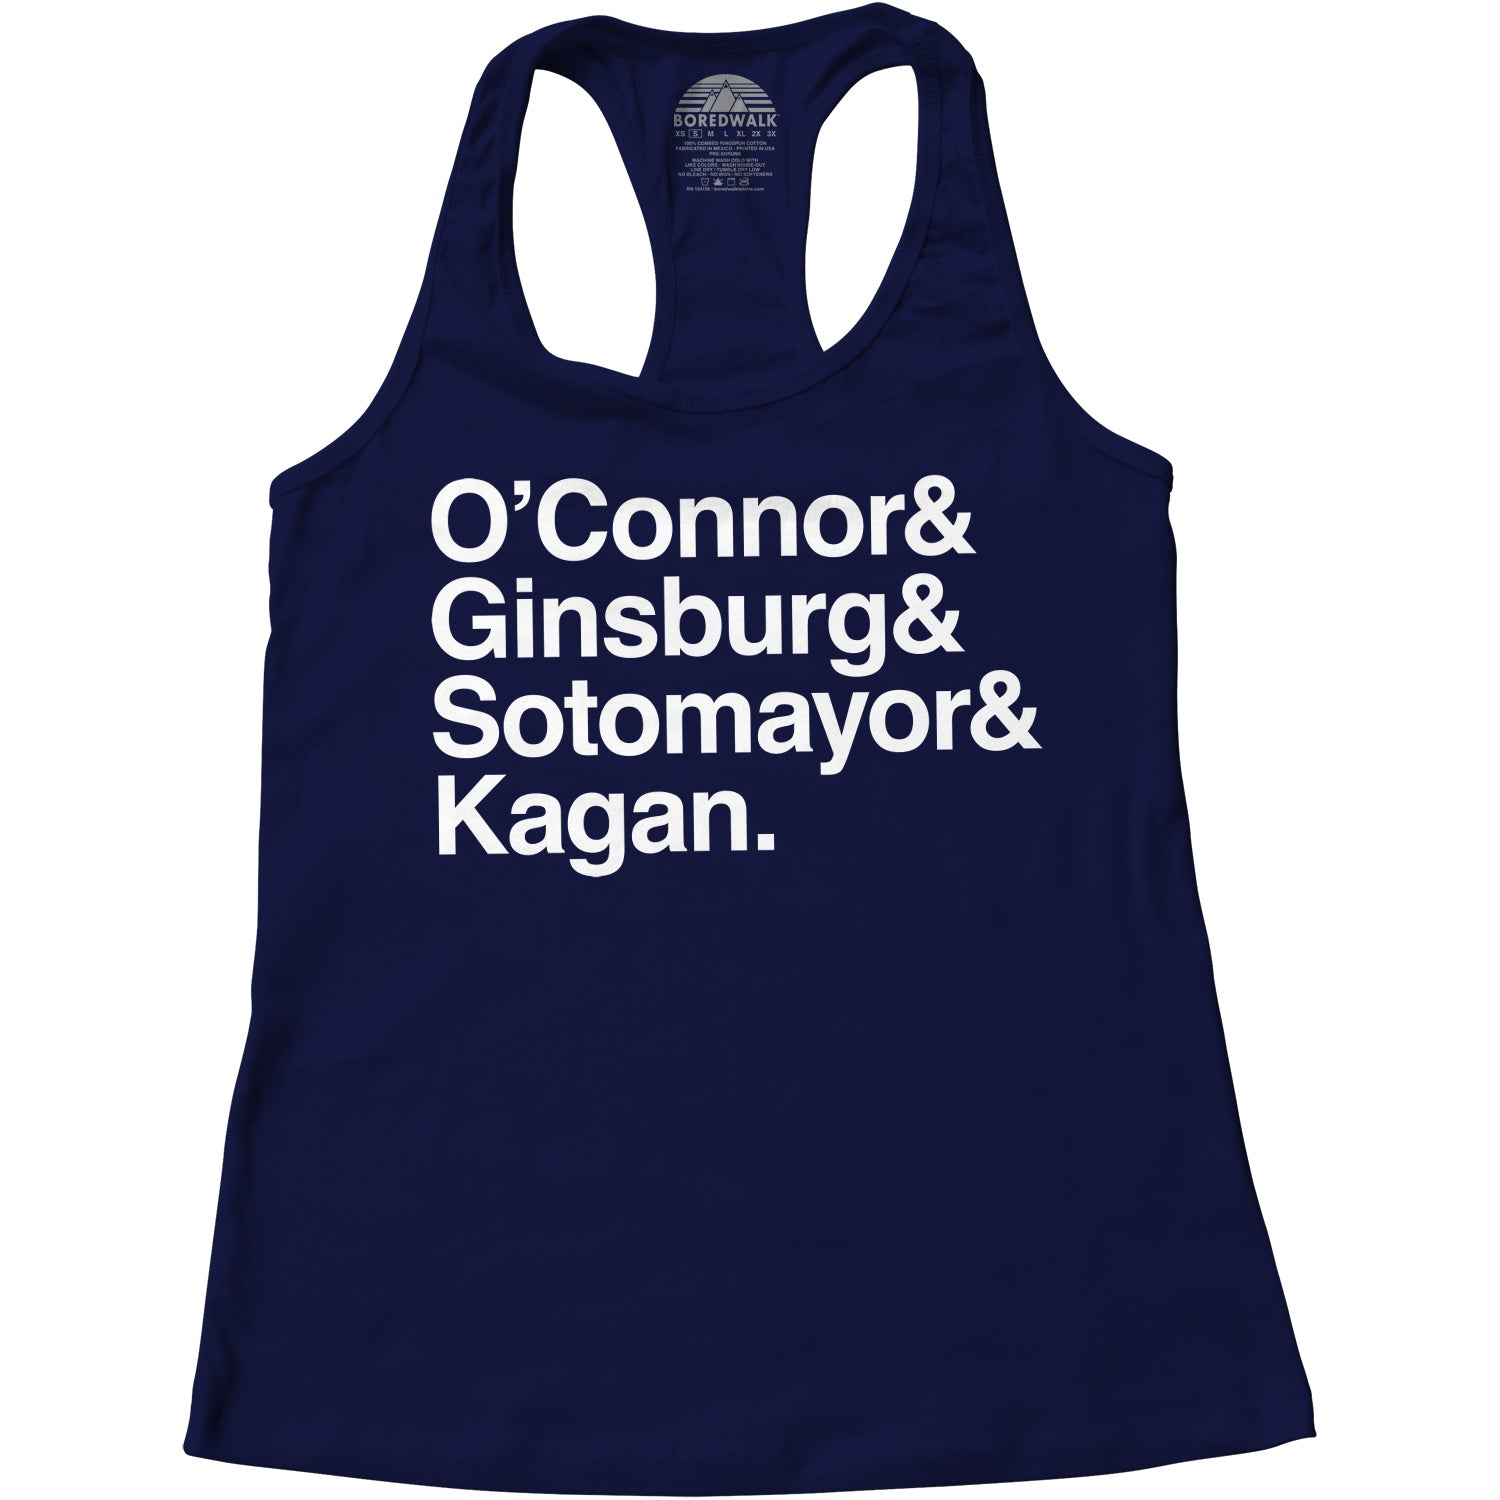 Women's O'Connor Ginsburg Sotomayor Kagan Racerback Tank Top